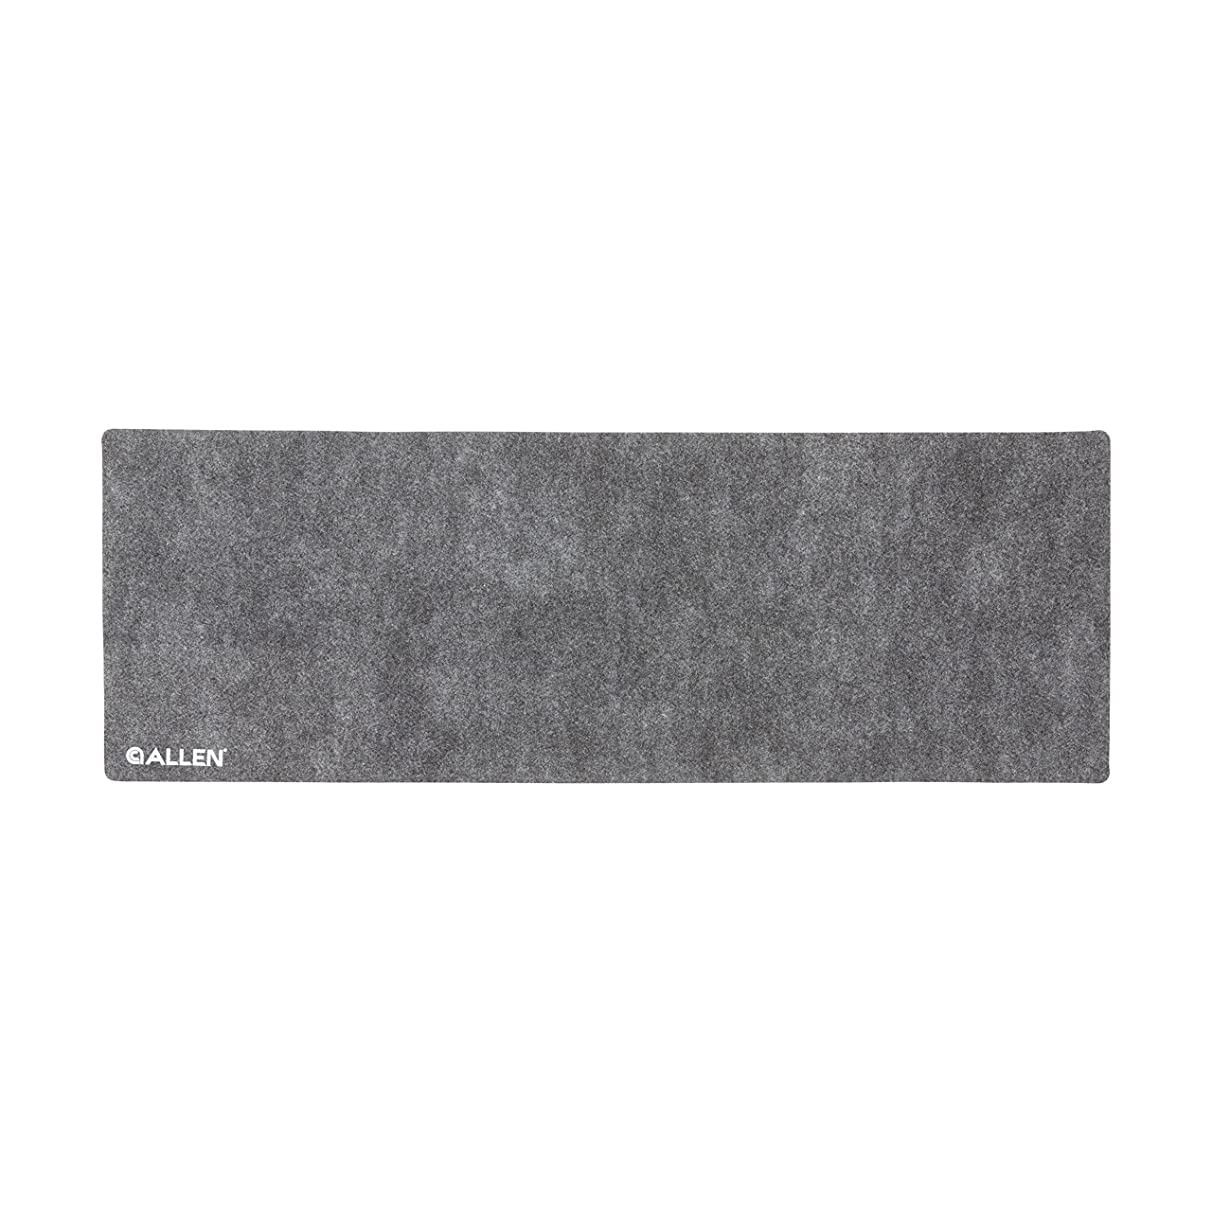 Allen Rifle/Shotgun Cleaning Mat, Gray, 14